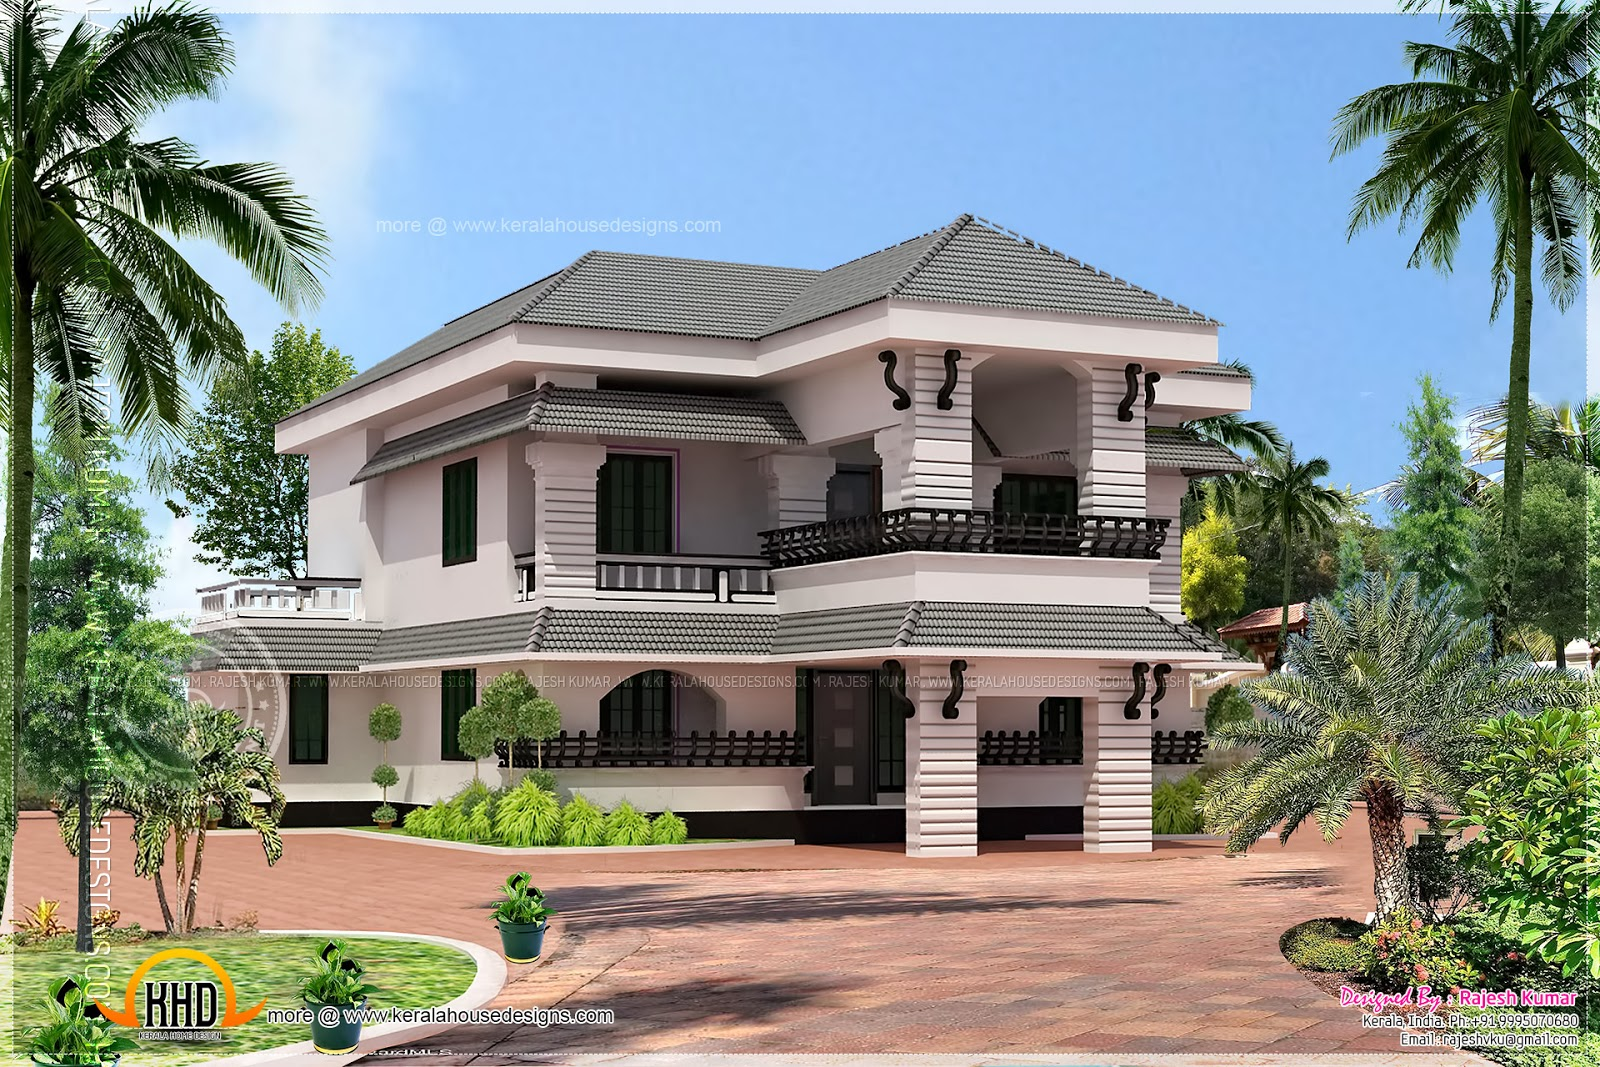 Malabar model home design kerala home design and floor plans for Design your house